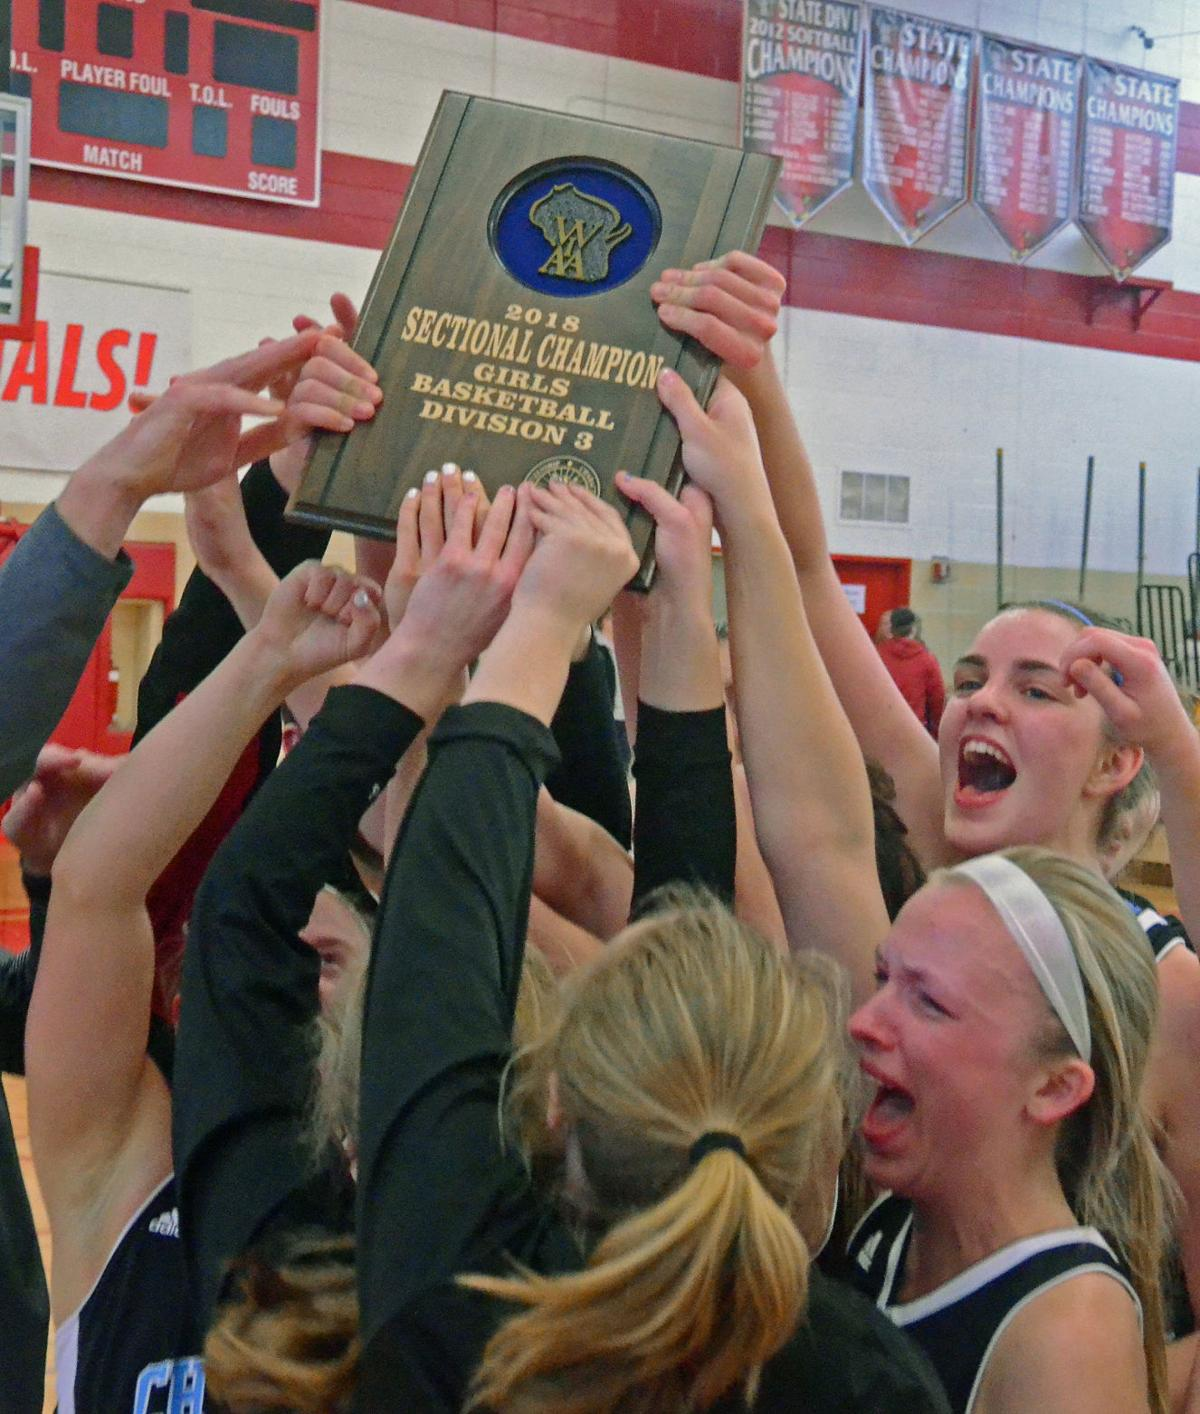 Dells with plaque